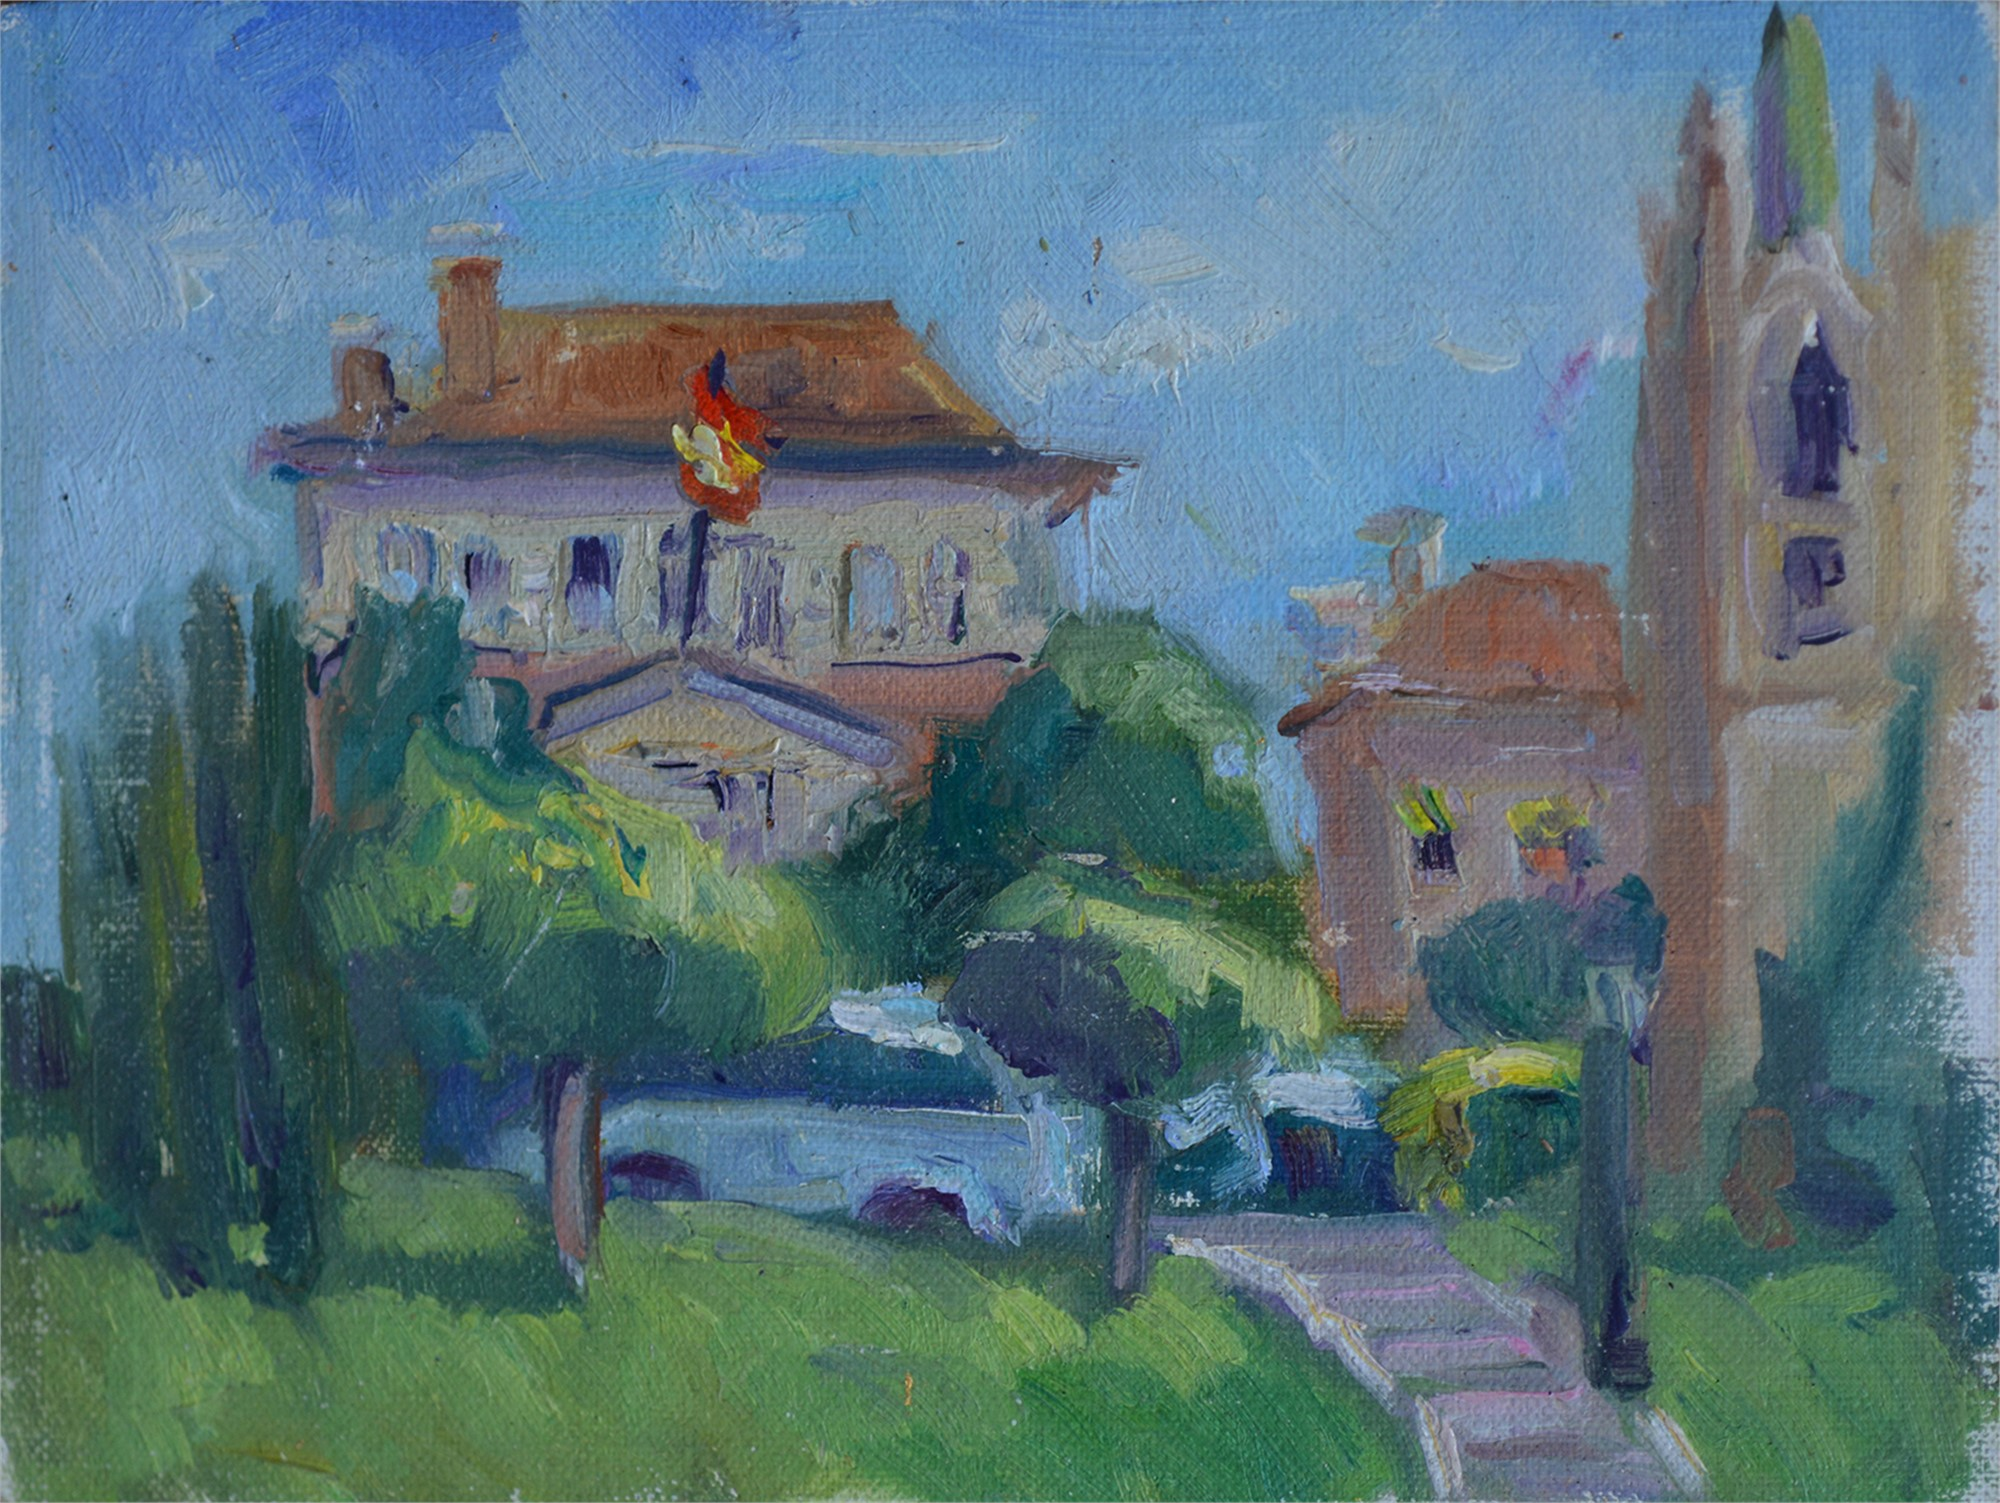 Building near the Prado Museum by Karen Hewitt Hagan